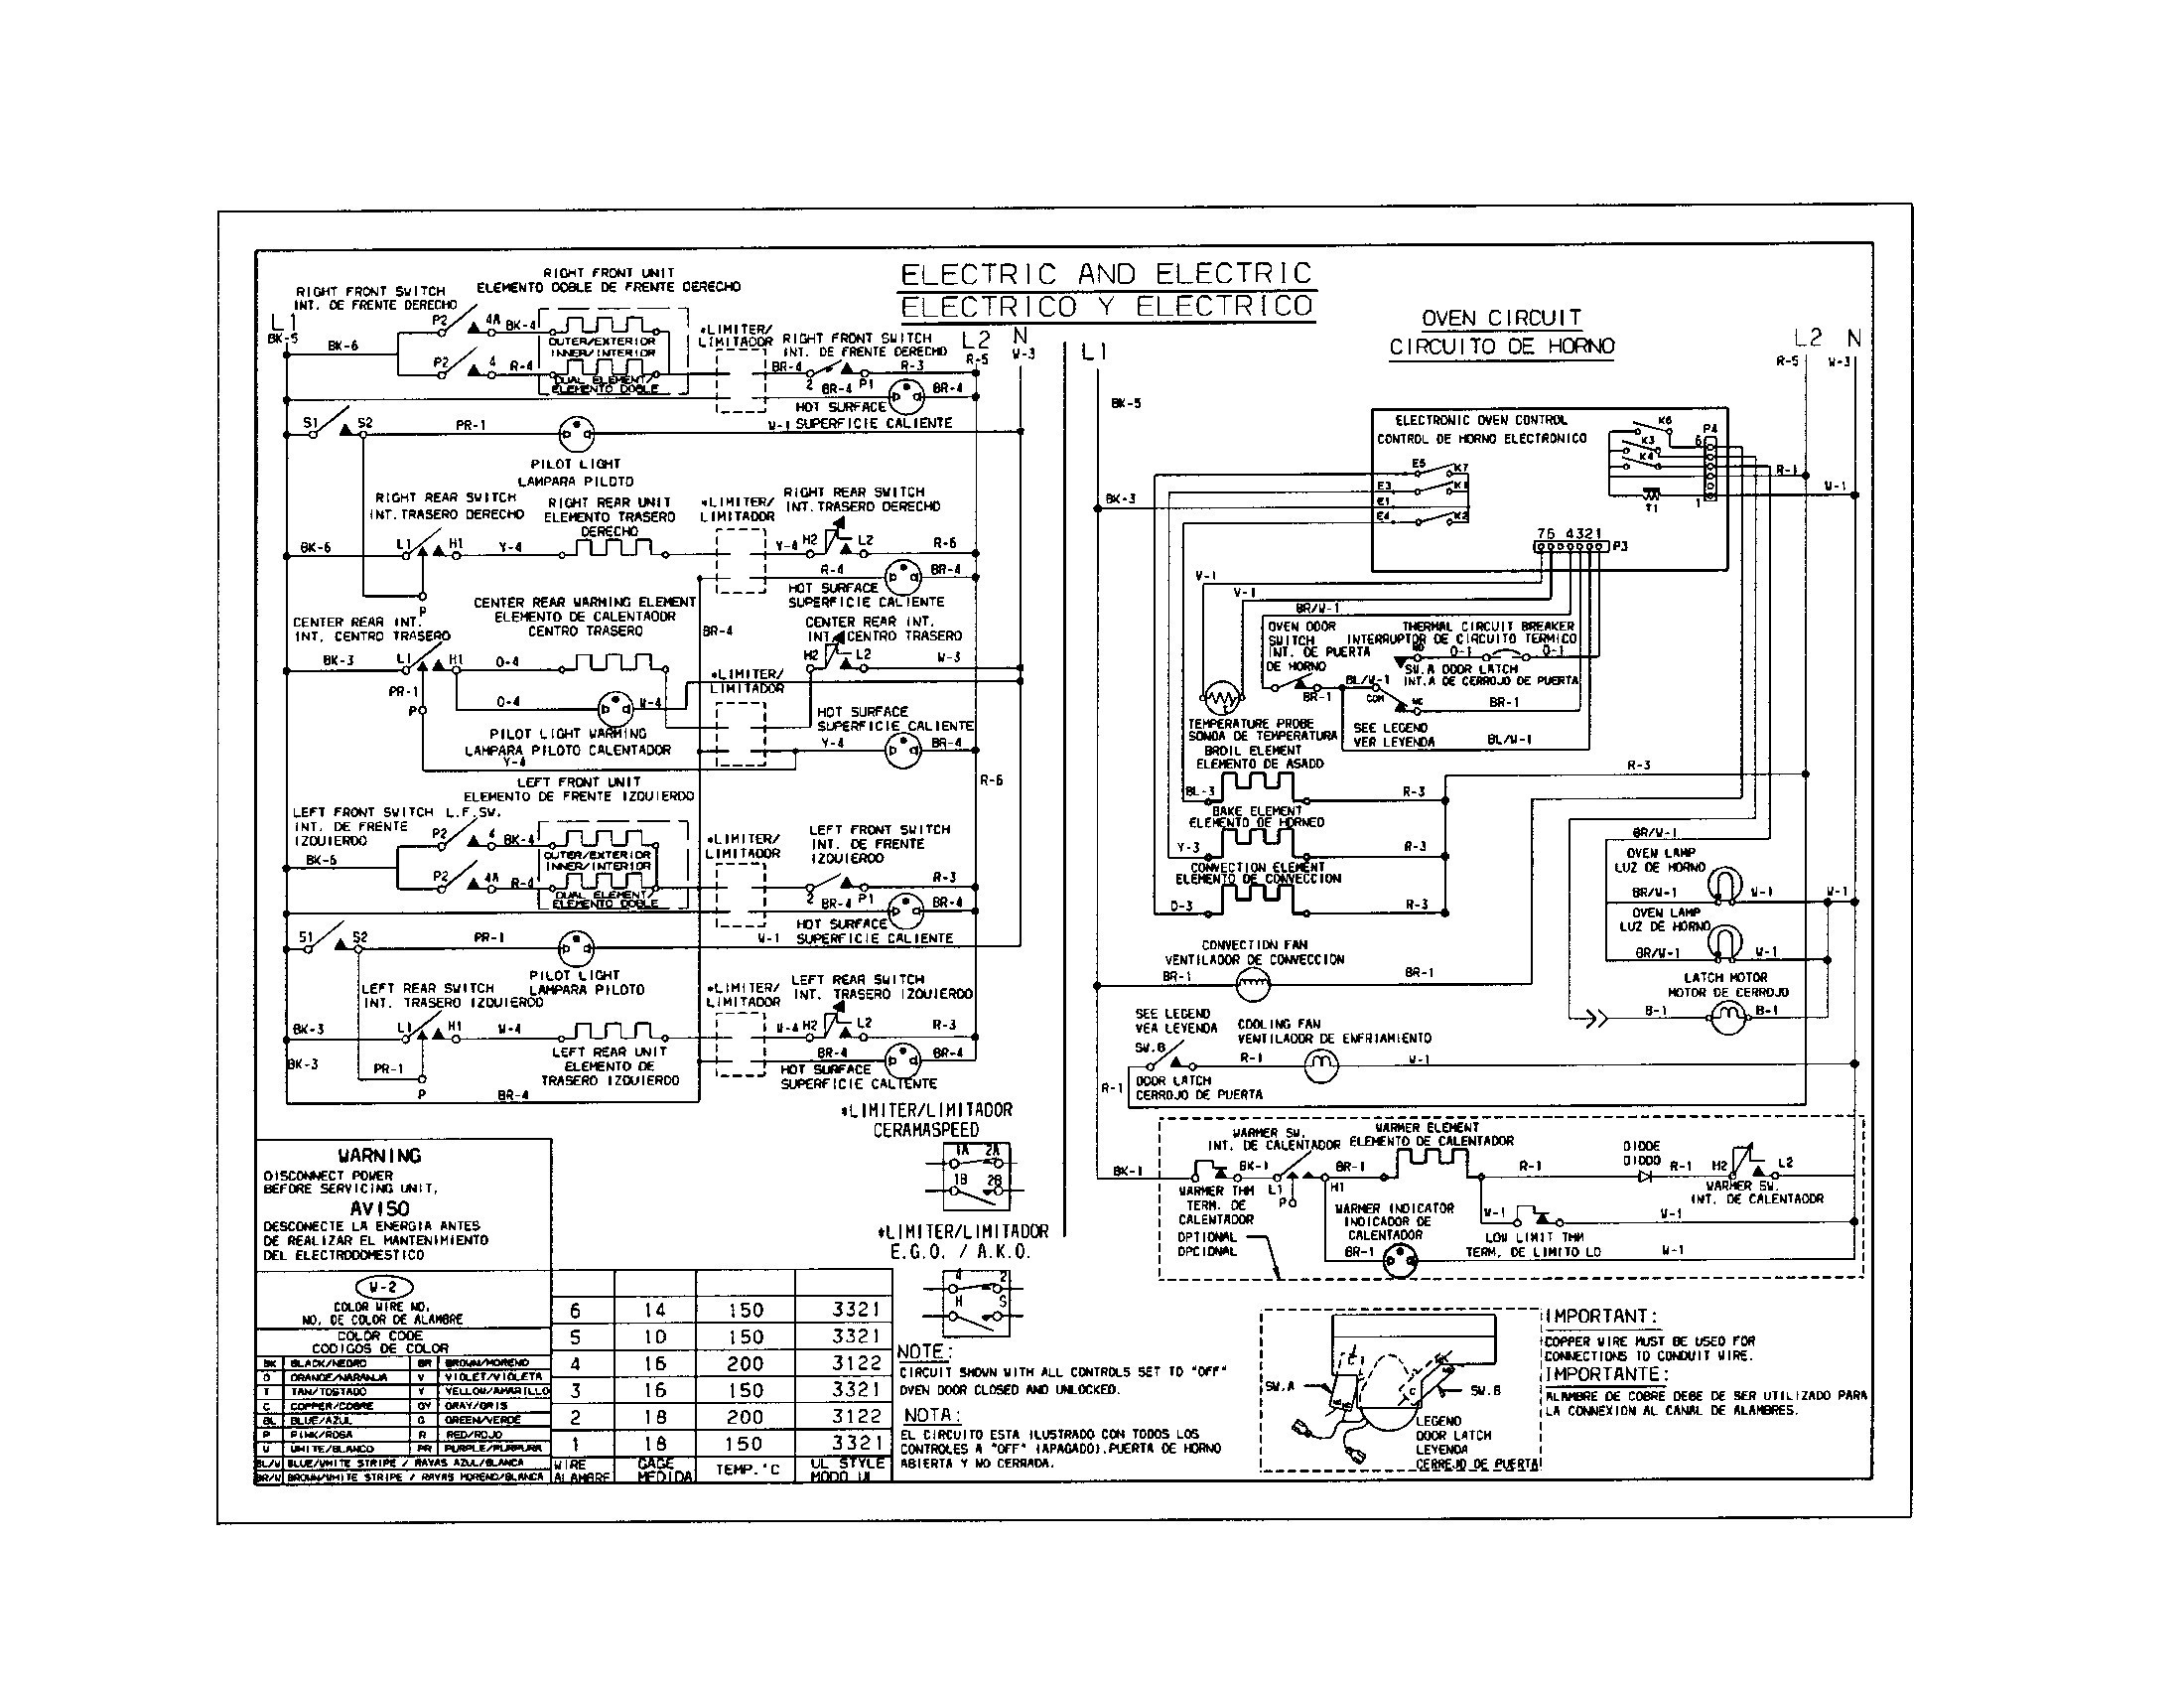 DIAGRAM] For Diagram Range Wiring Whirlpool Gs445lems4 FULL Version HD  Quality Whirlpool Gs445lems4 -  PREGBOARDWIRING.CONCESSIONARIABELOGISENIGALLIA.ITconcessionariabelogisenigallia.it